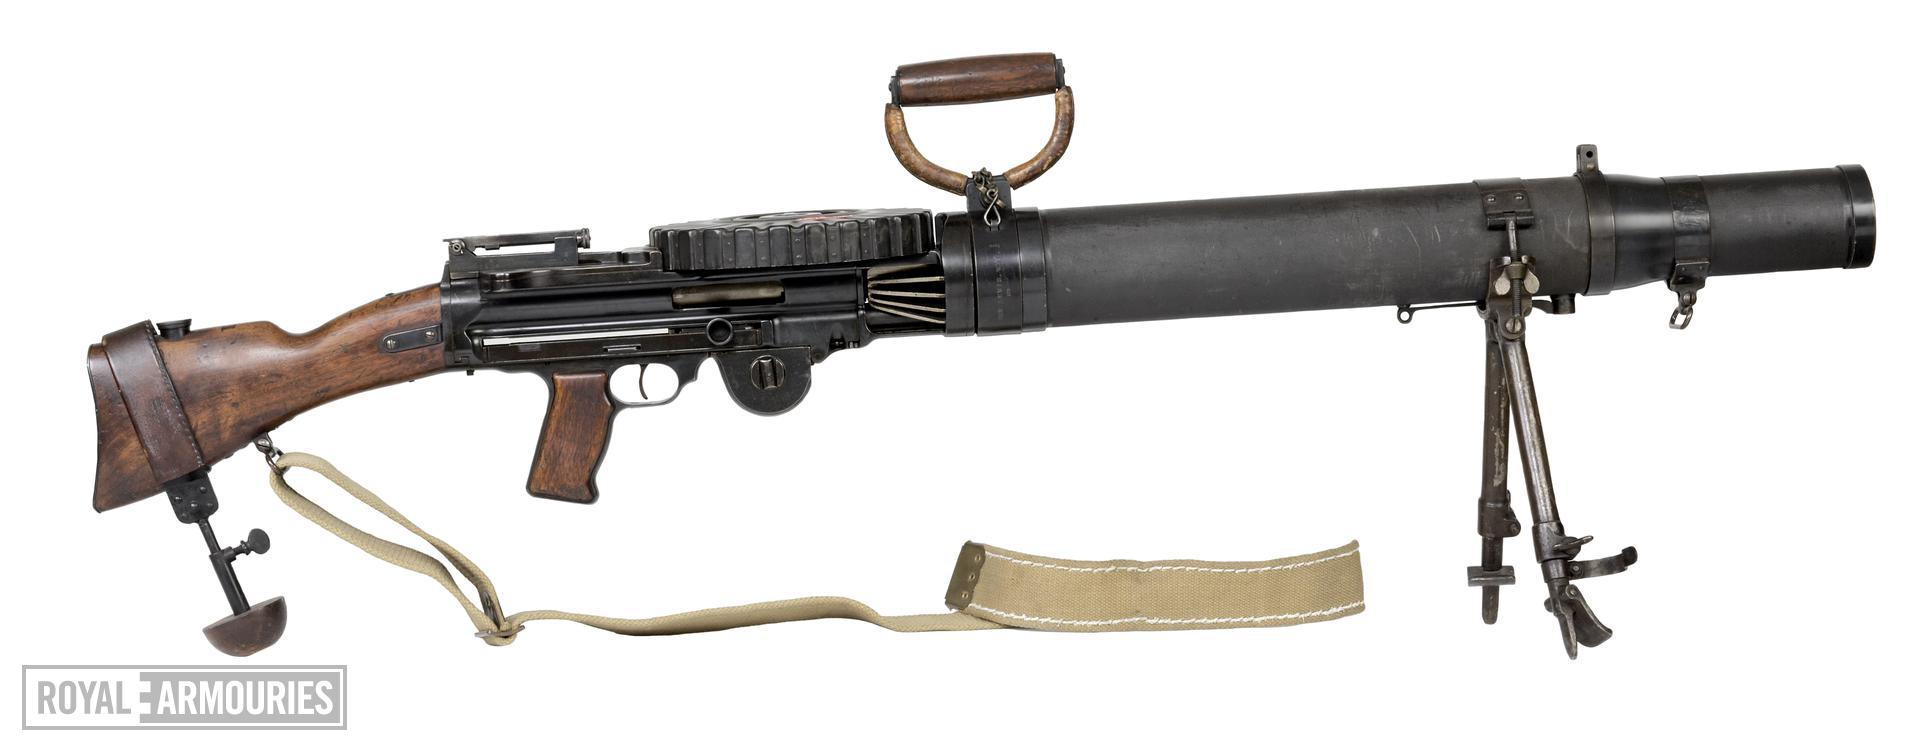 Centrefire automatic light machine gun - Lewis Mk.I